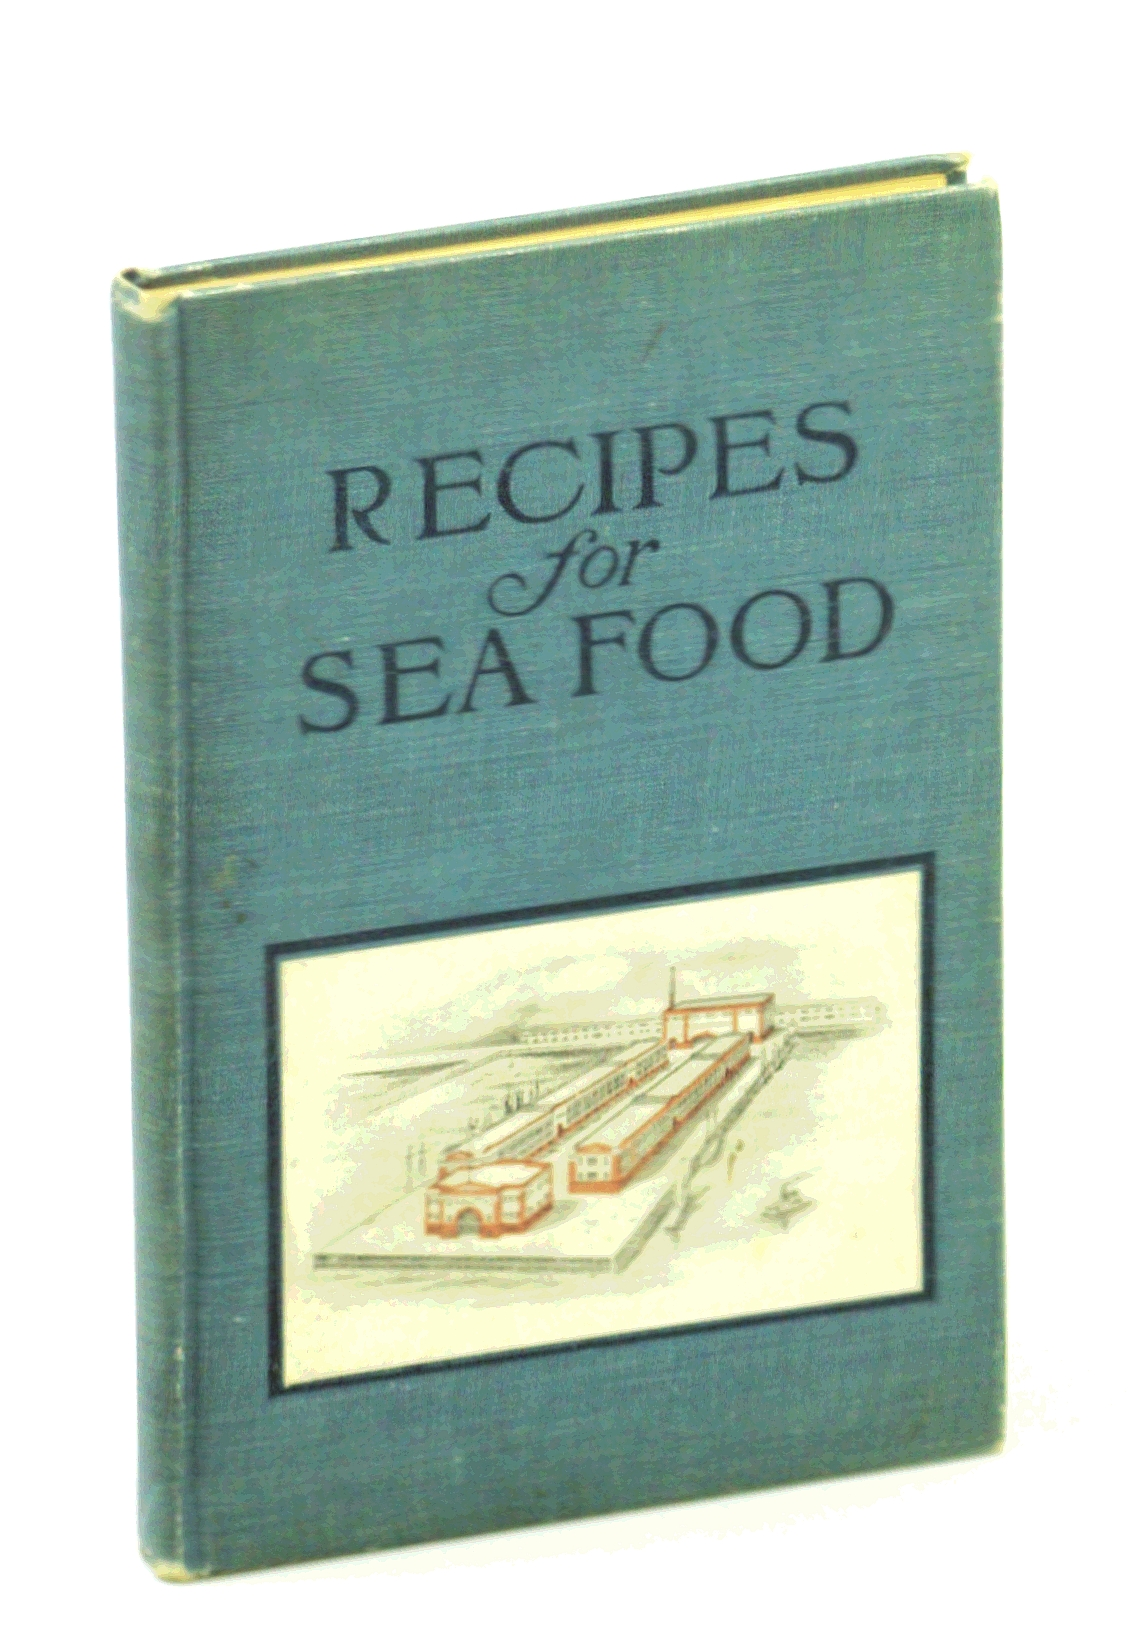 Image for Recipes for Seafood. How to Prepare and Serve Fish, Oysters, Clams, Scallops, Lobsters, Crabs, and Shrimp